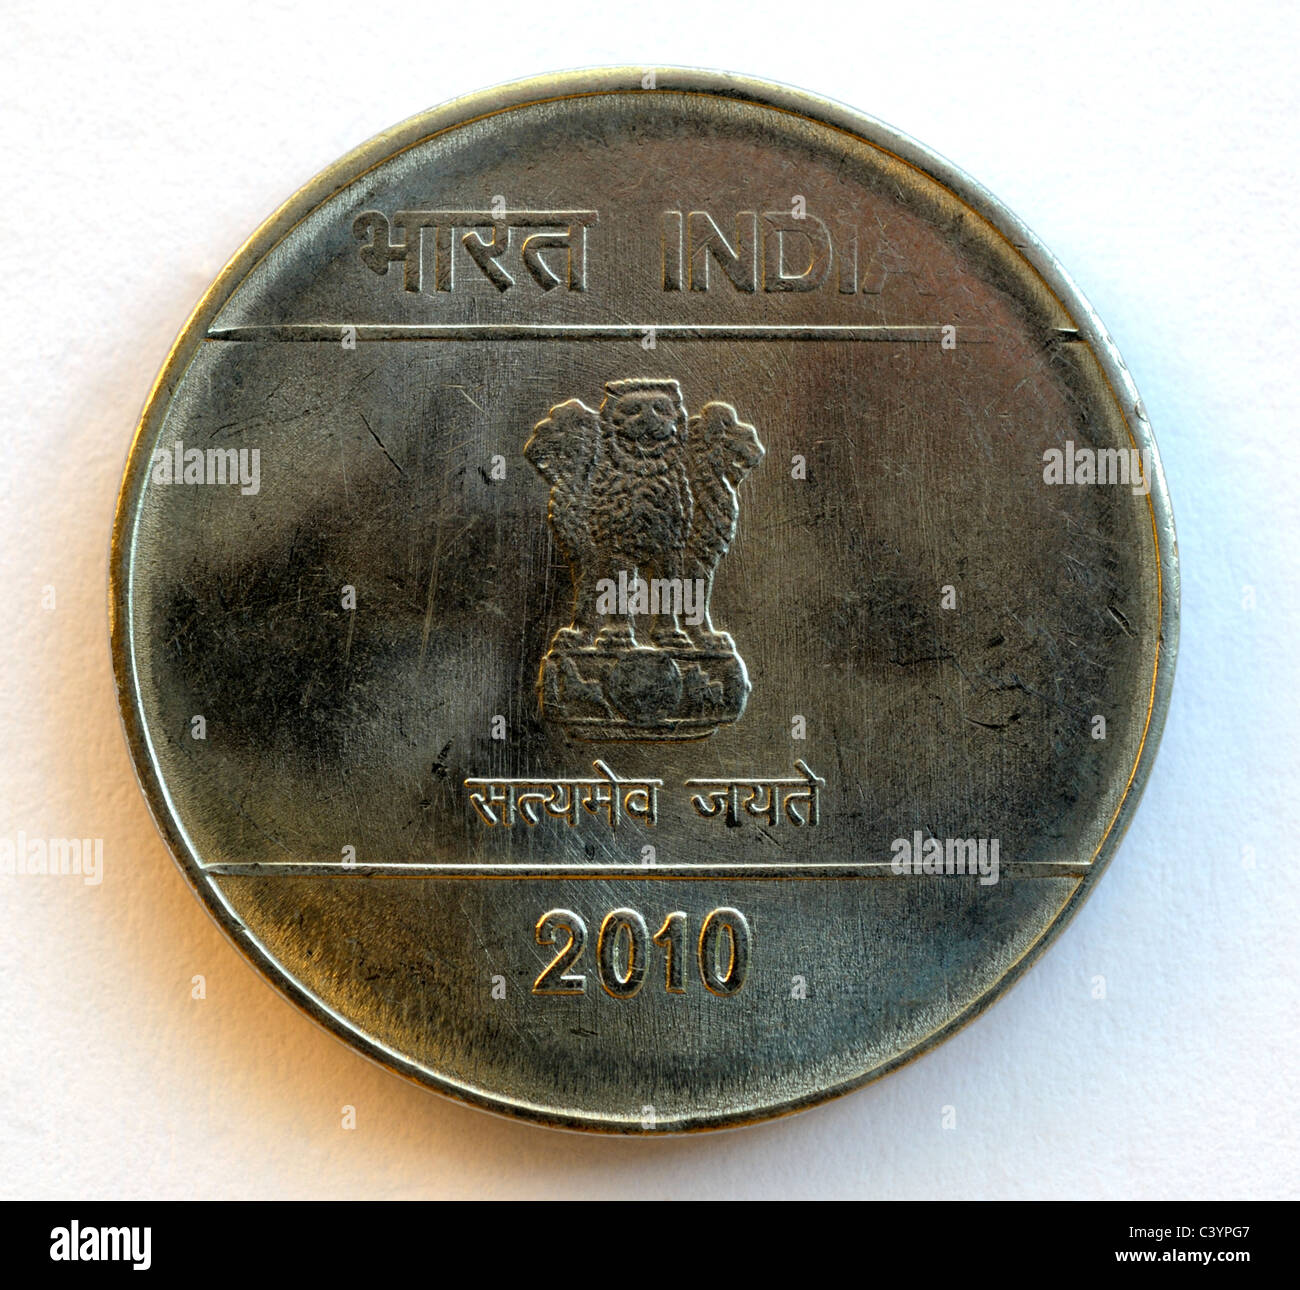 India 2 Two Rupee Coin. - Stock Image